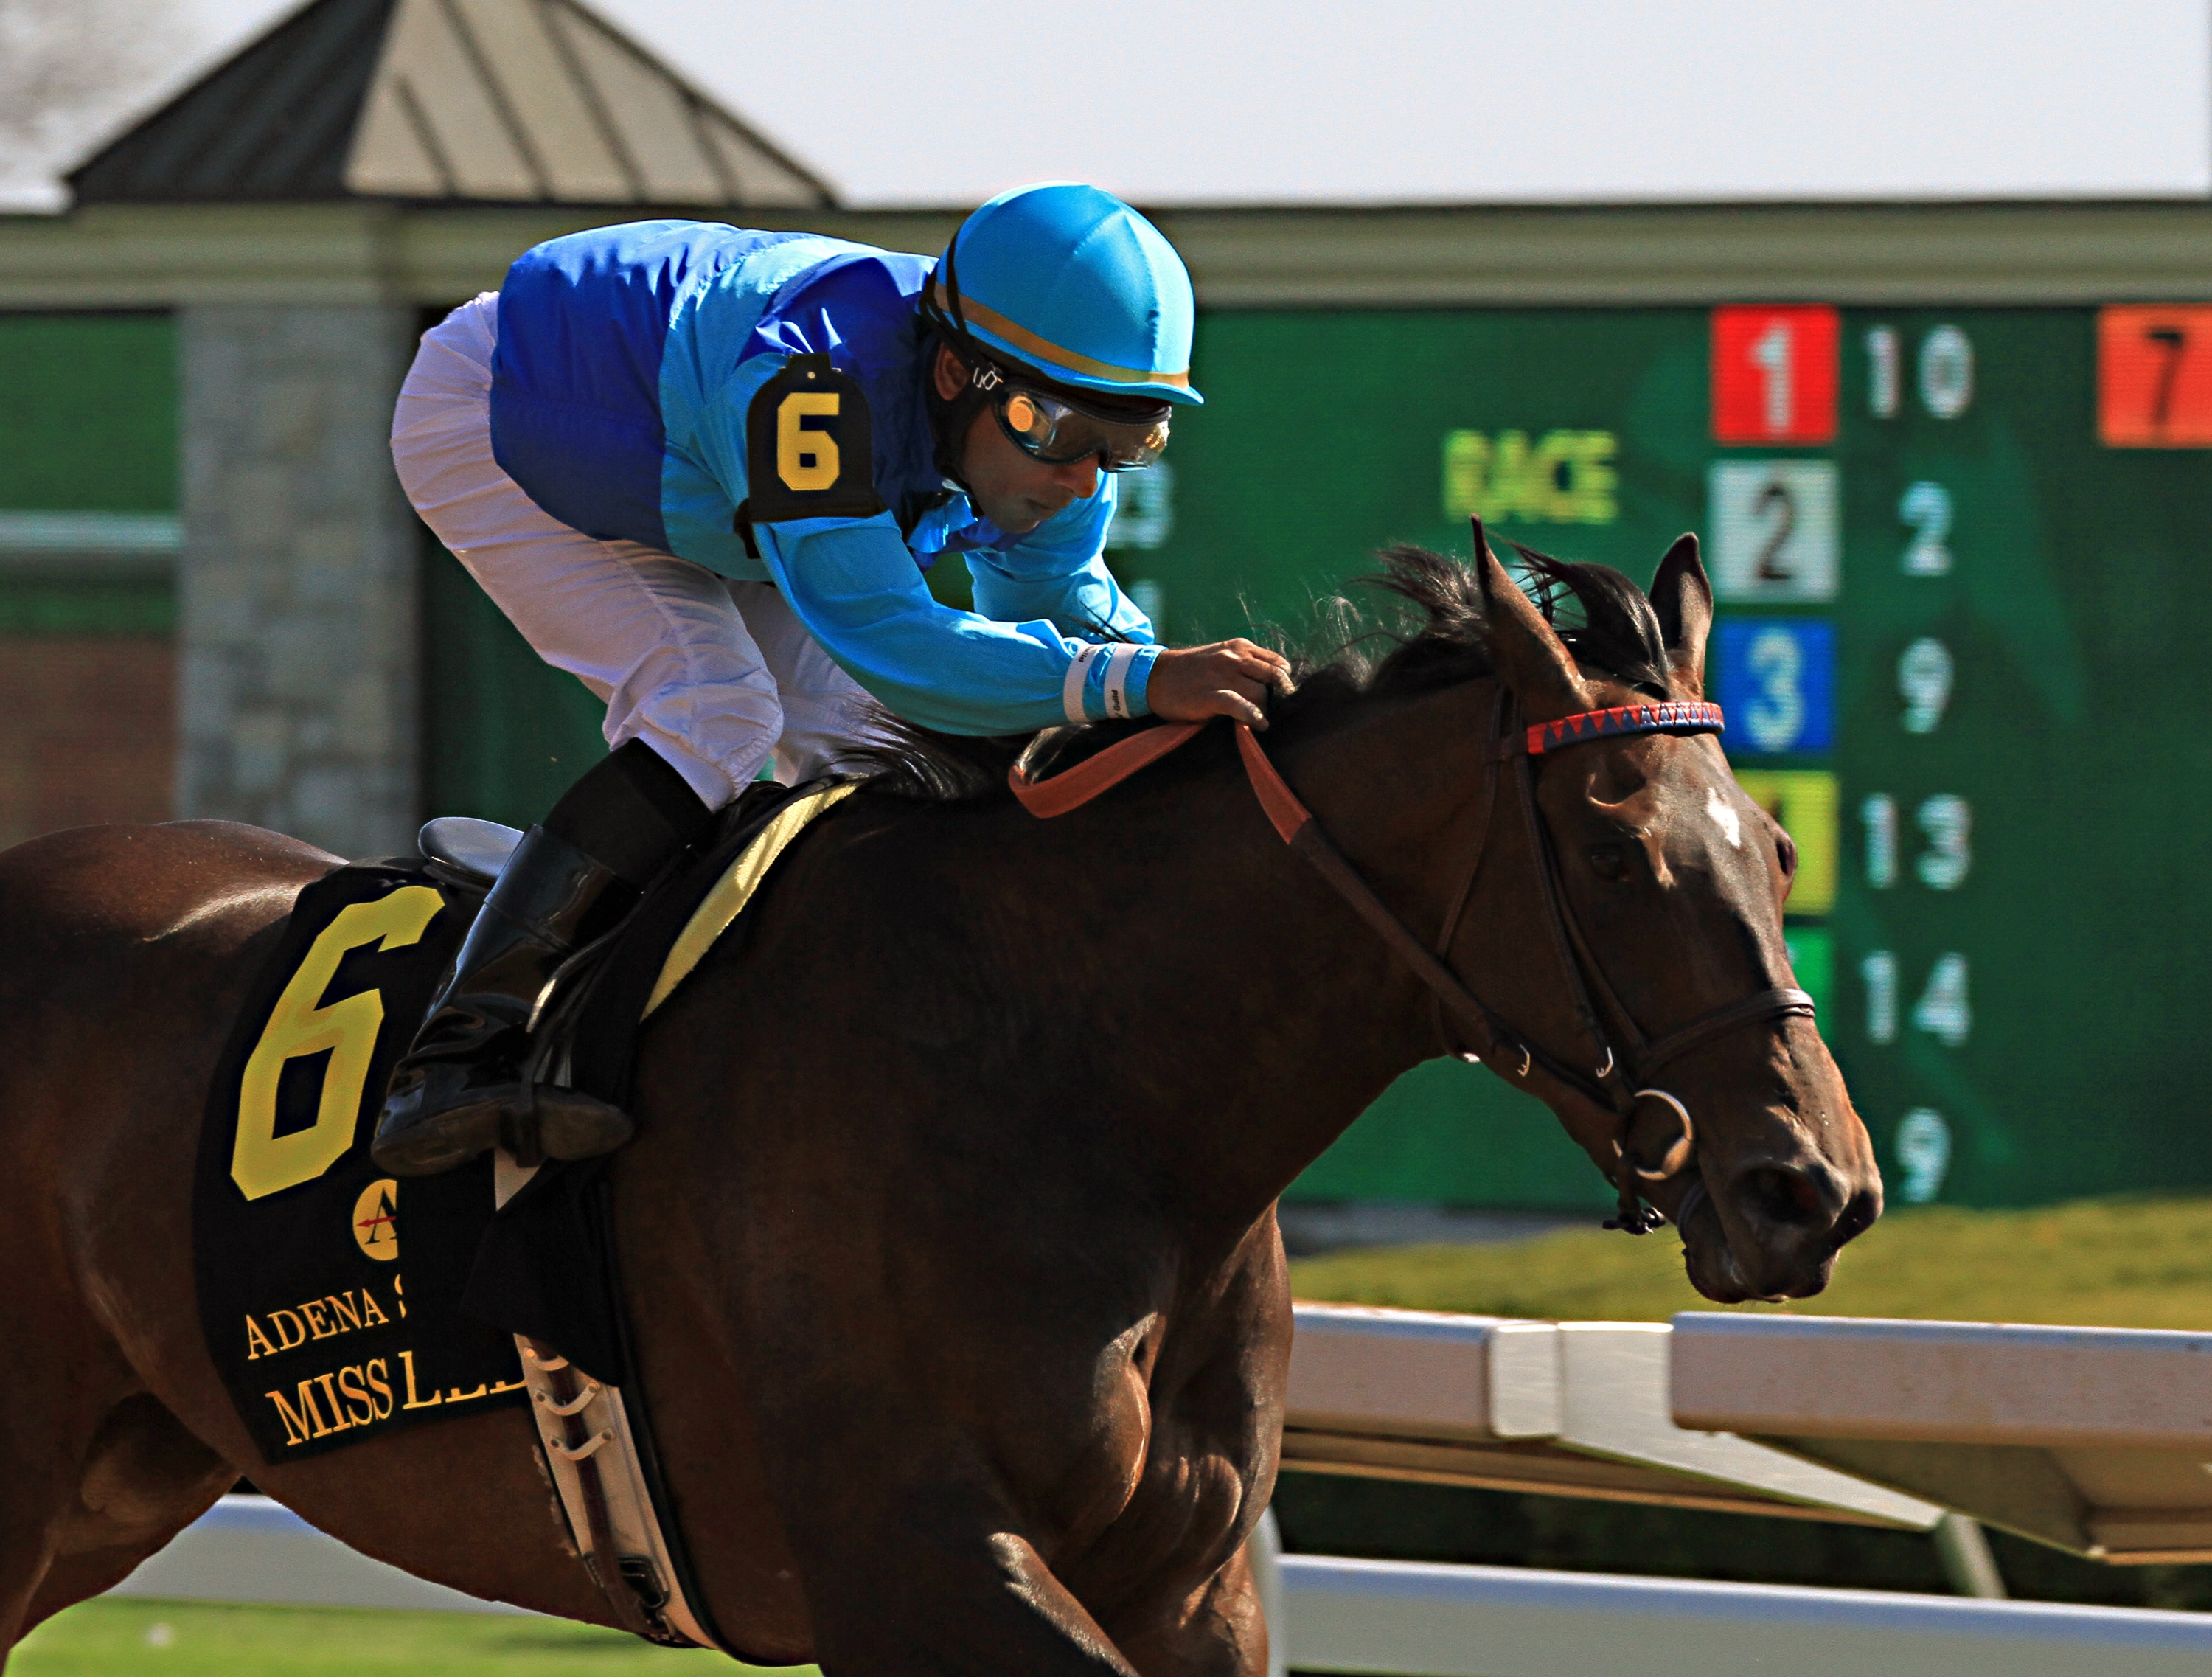 FILE - In this Sunday, April 12, 2015, file photo, jockey Rajiv Maragh rides Miss Ella to victory in the Beaumont Stakes horse race at Keeneland Race Course in Lexington, Ky. Maragh remains hospitalized with four fractured vertebrae, a broken left rib and